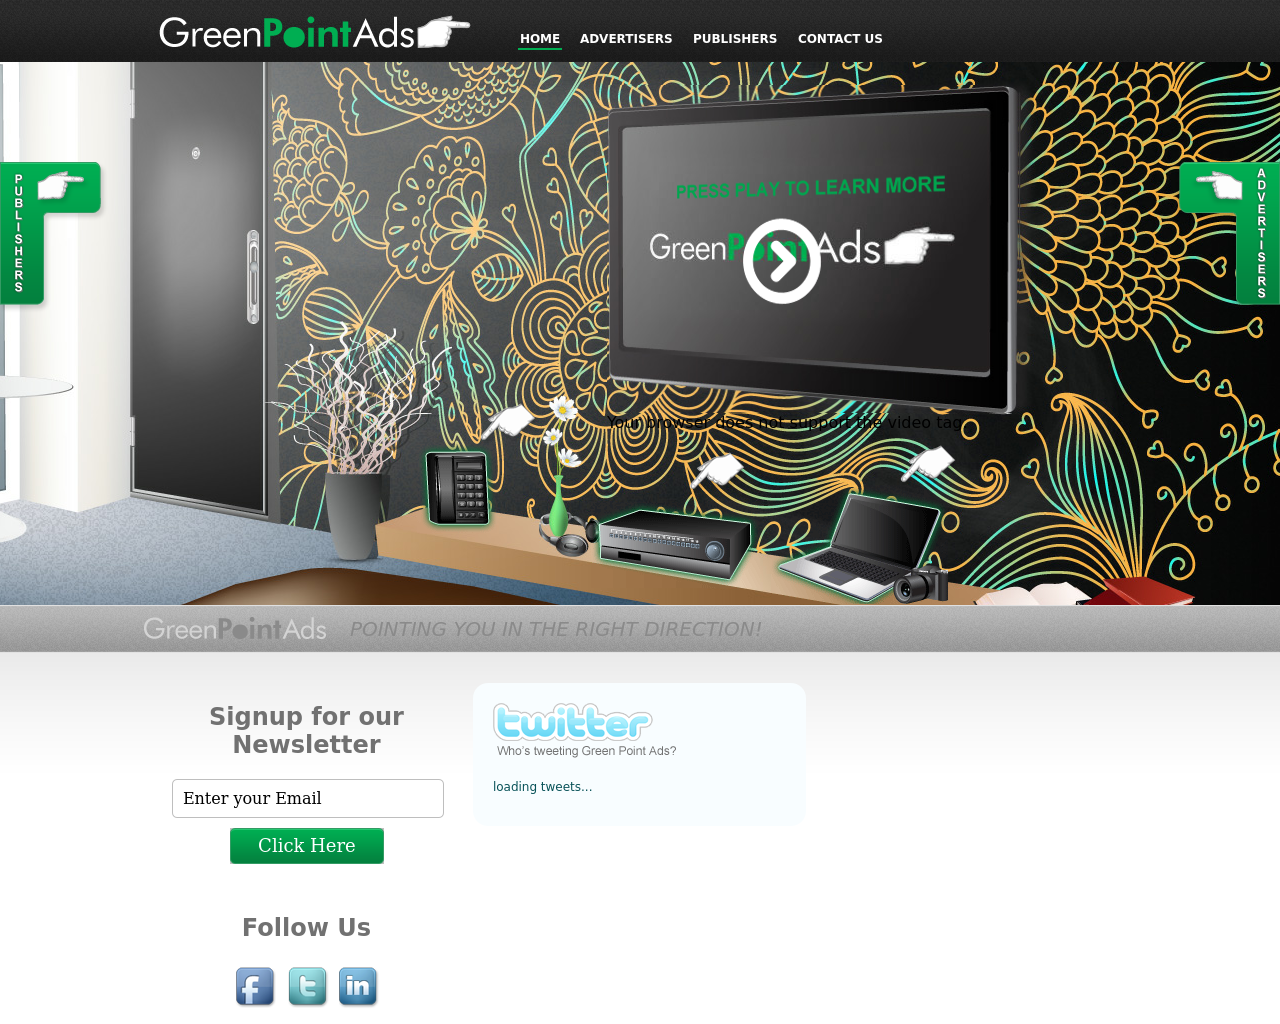 Green-Point-Ads-Advertising-Reviews-Pricing